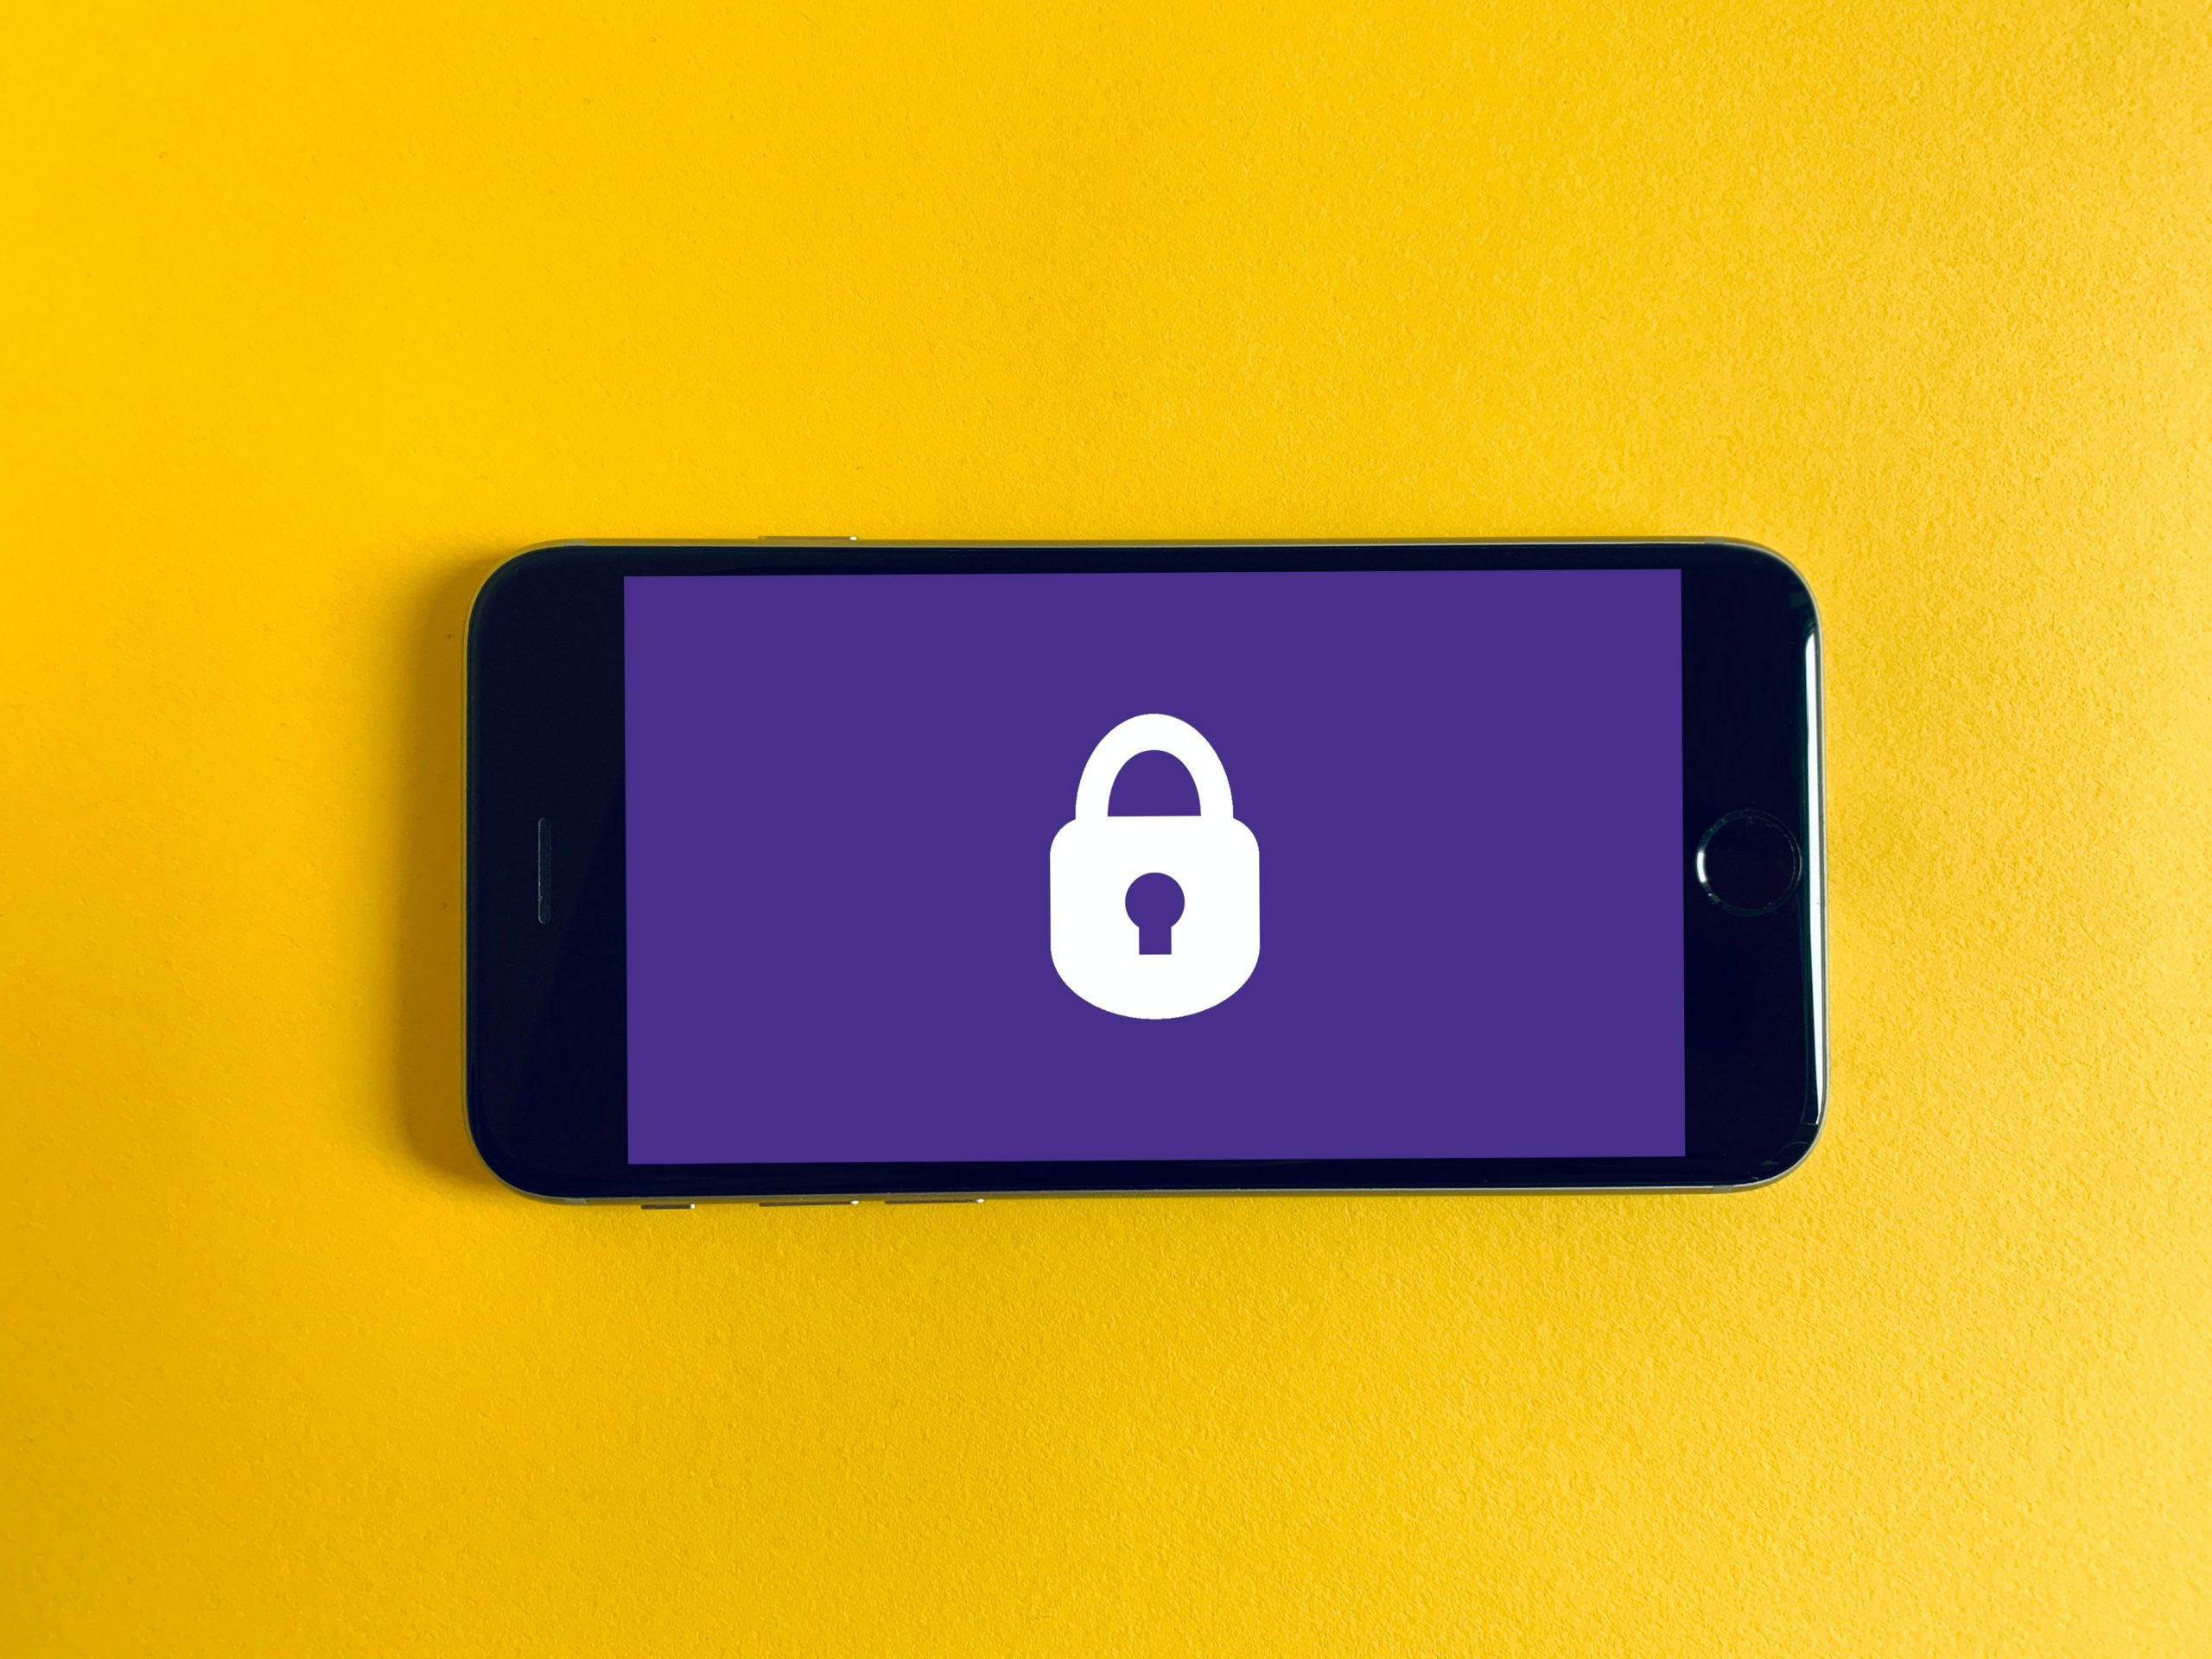 Smartphone with screen displaying white lock against purple background. Photo by Franck on Unsplash